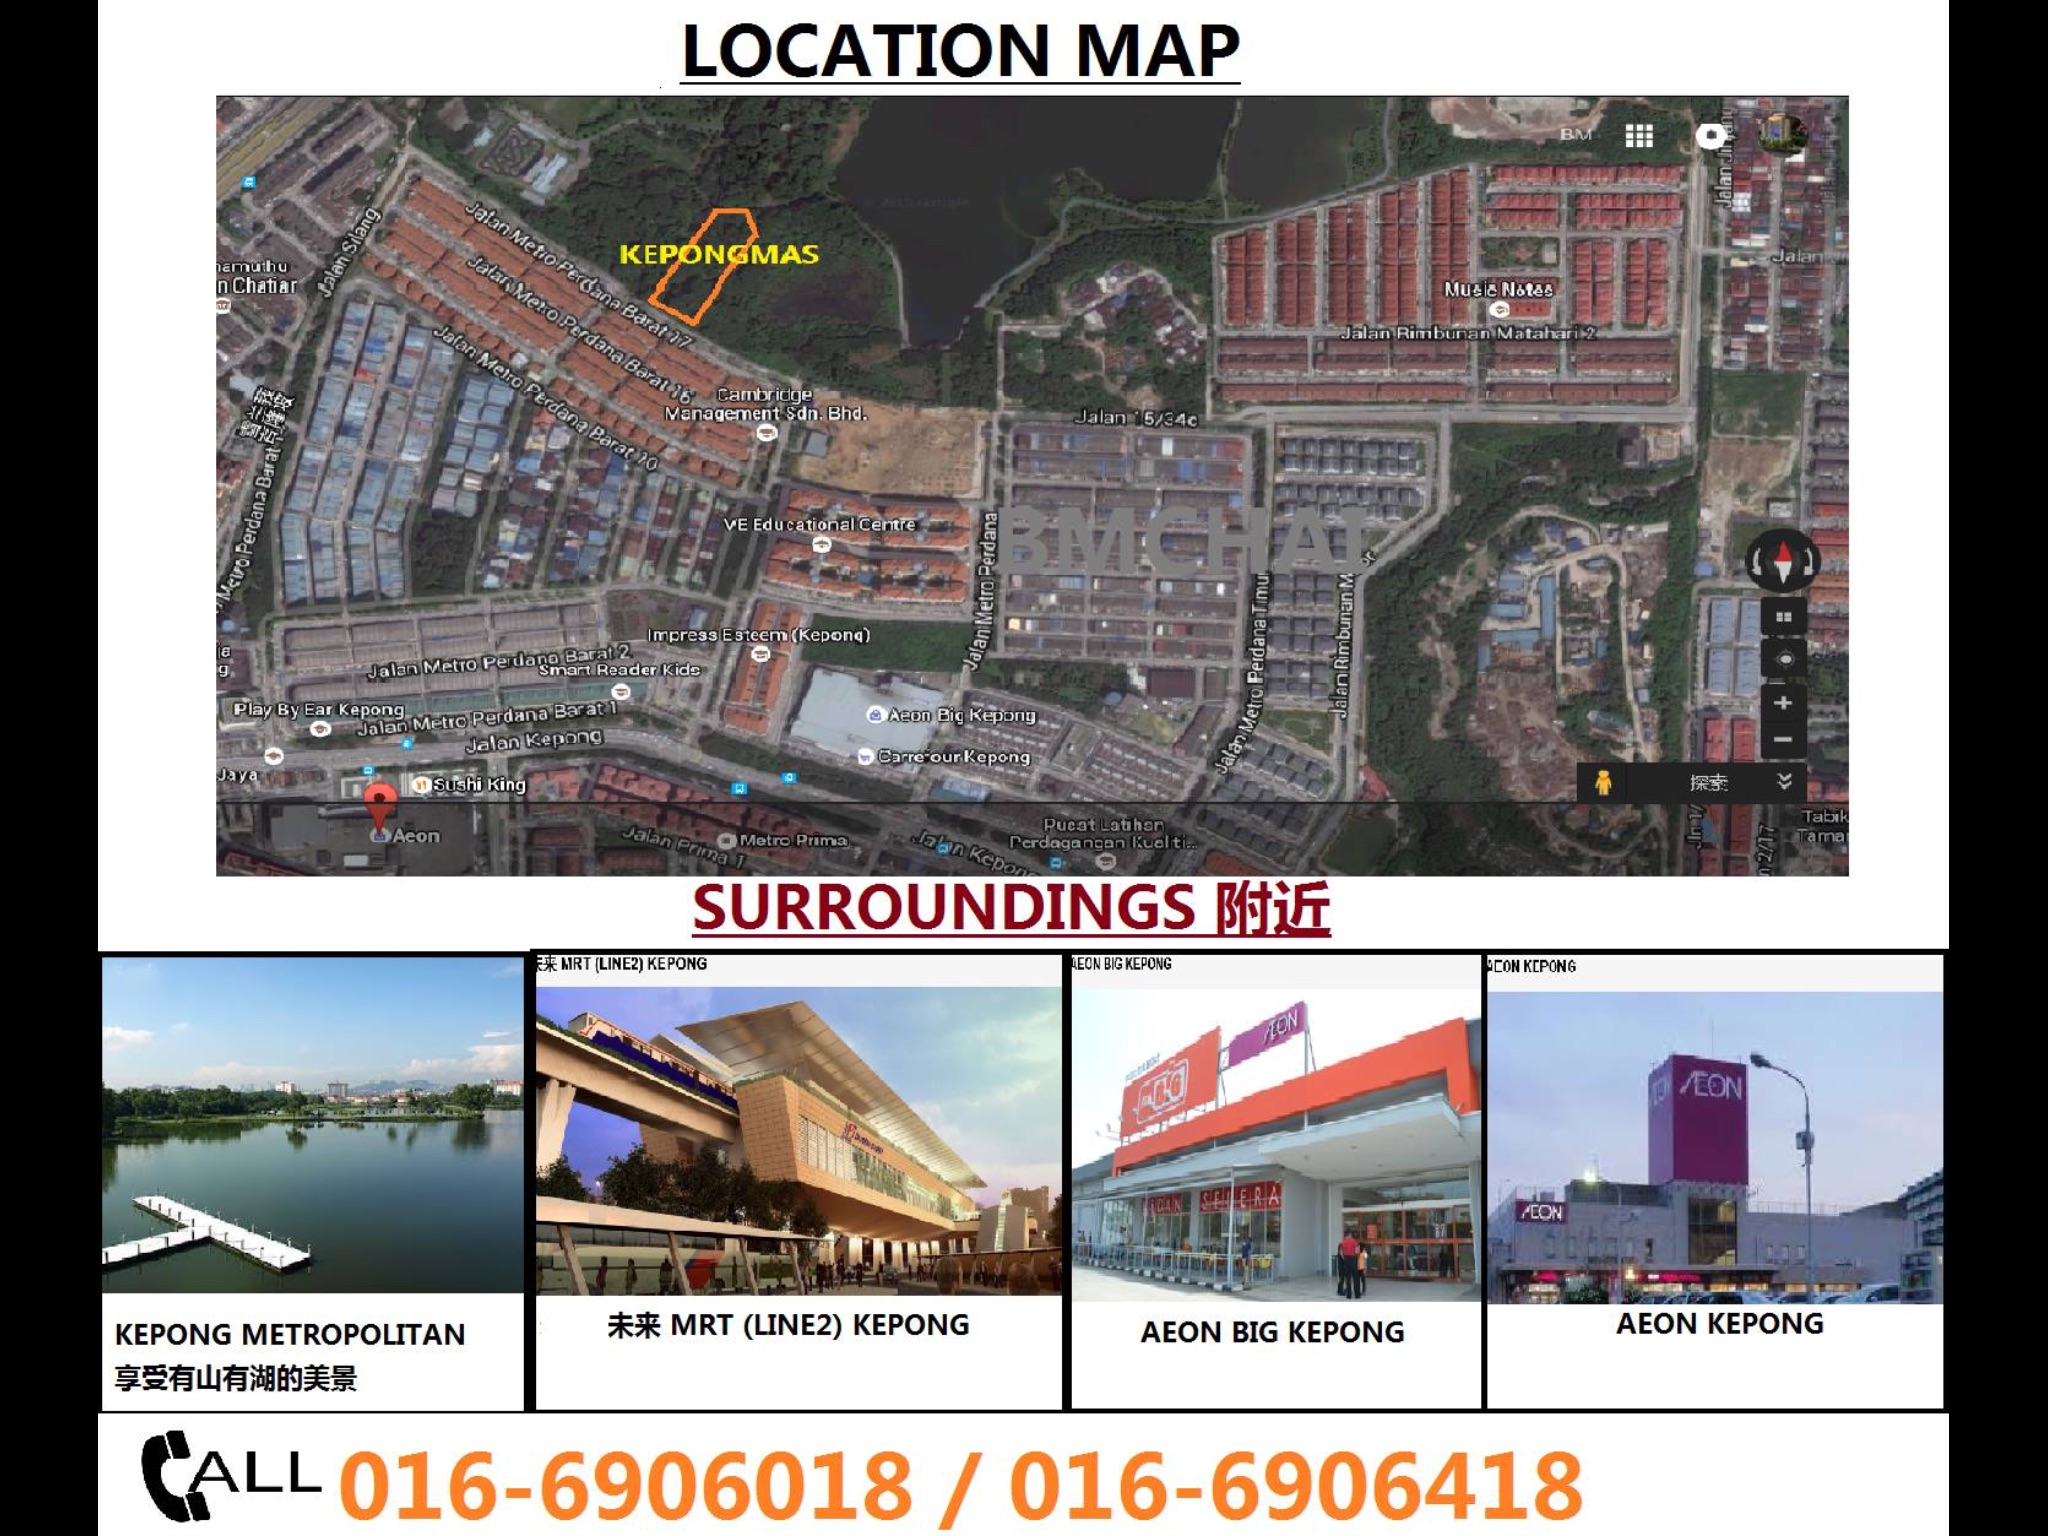 Most affordable property in KL Kepong